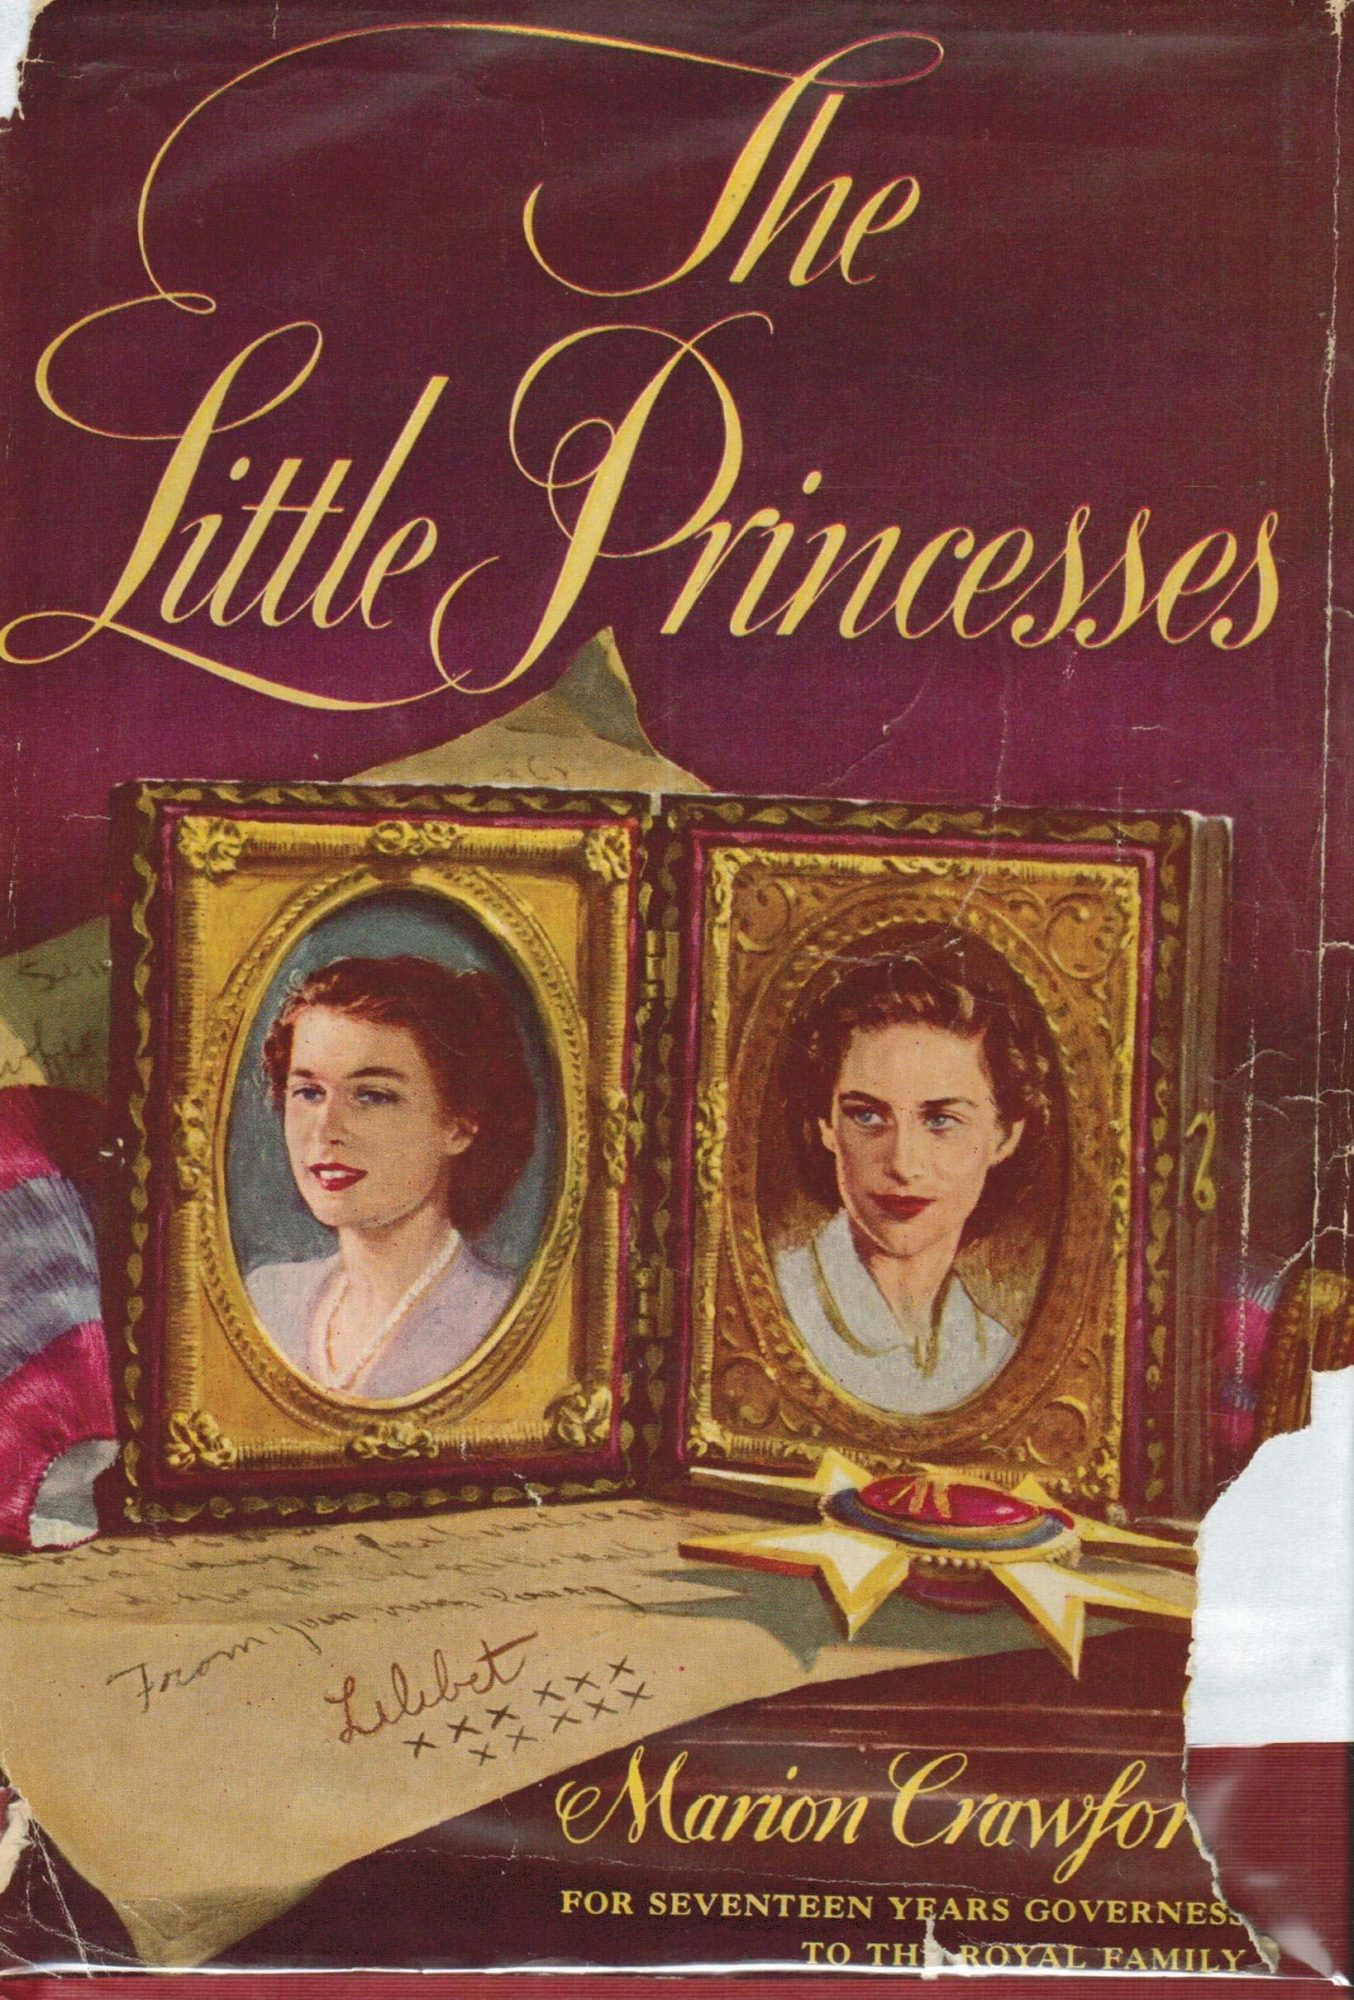 MARION CRAWFORD, THE LITTLE PRINCESSES